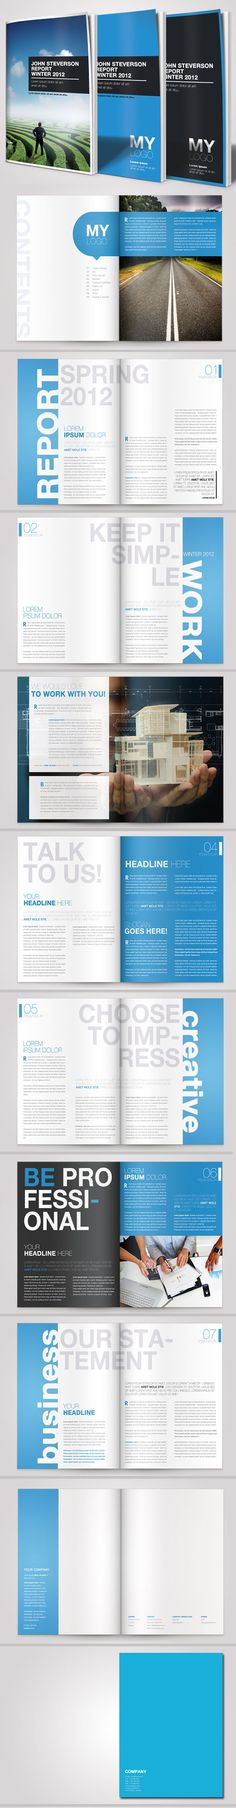 A4 Business Brochure Vol. 03 on the Behance Network